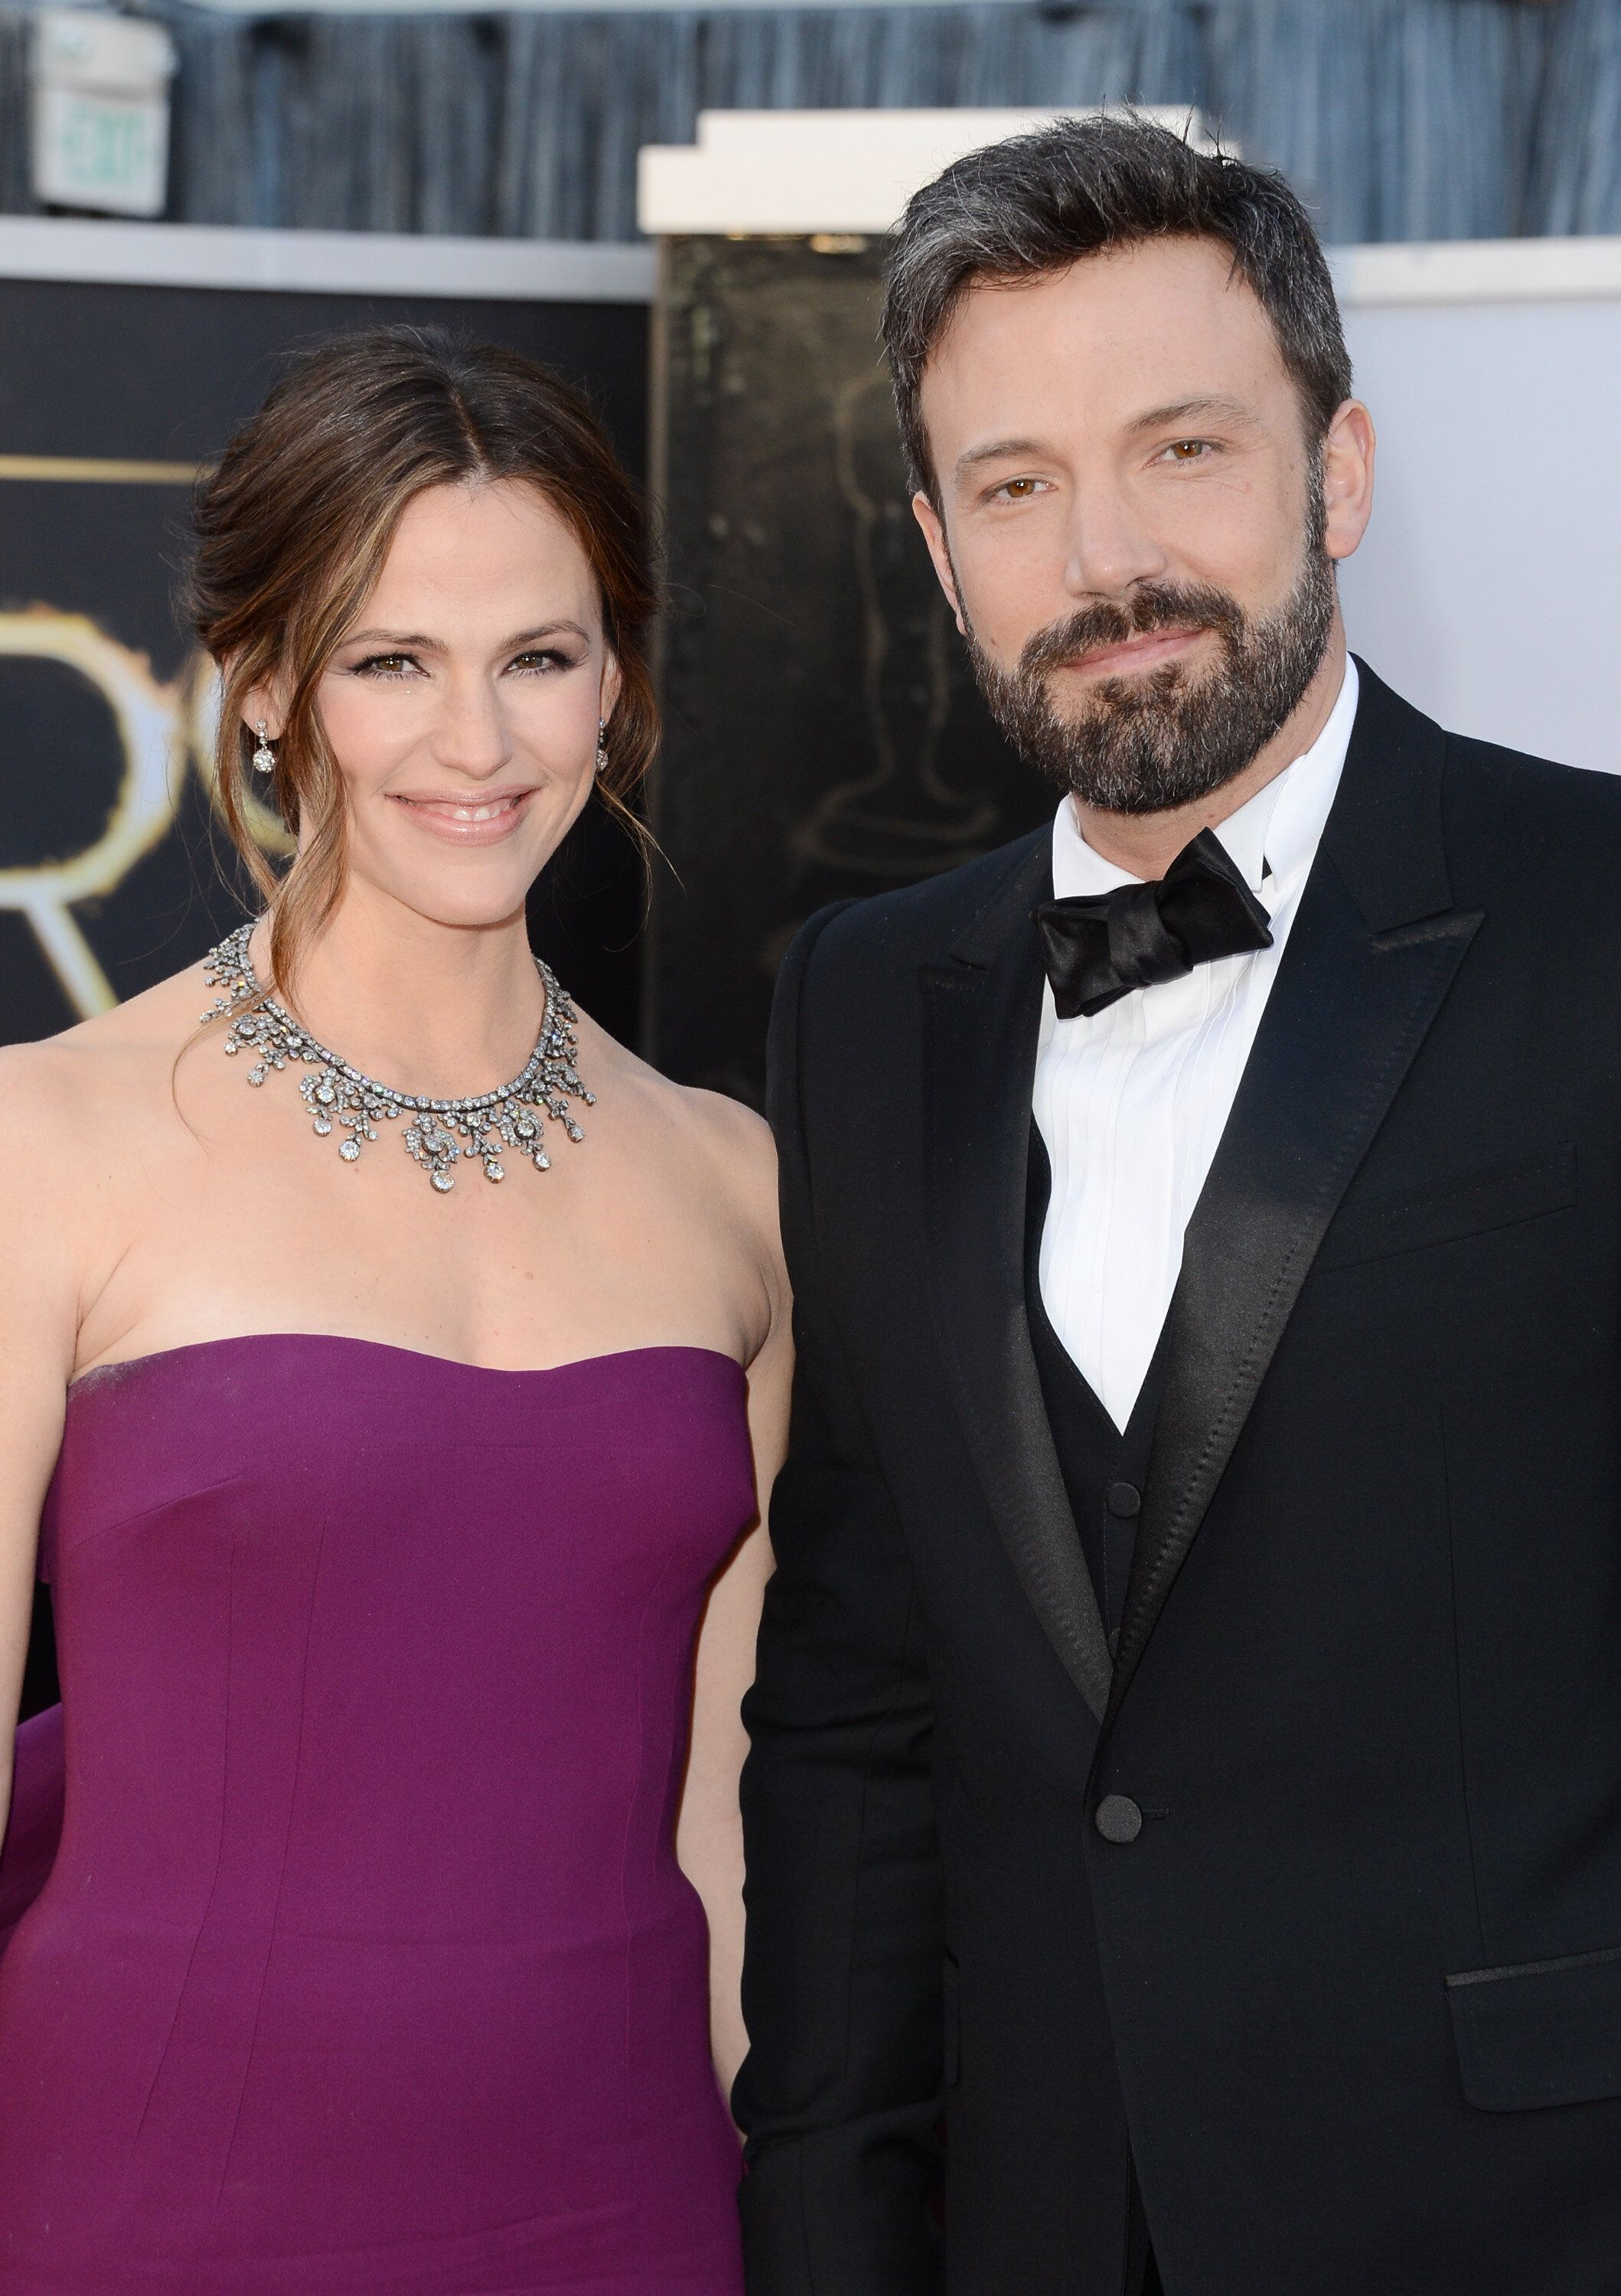 HOLLYWOOD, CA - FEBRUARY 24:  Actress Jennifer Garner and actor-director Ben Affleck arrive at the Oscars at Hollywood & Highland Center on February 24, 2013 in Hollywood, California.  (Photo by Jason Merritt/Getty Images)